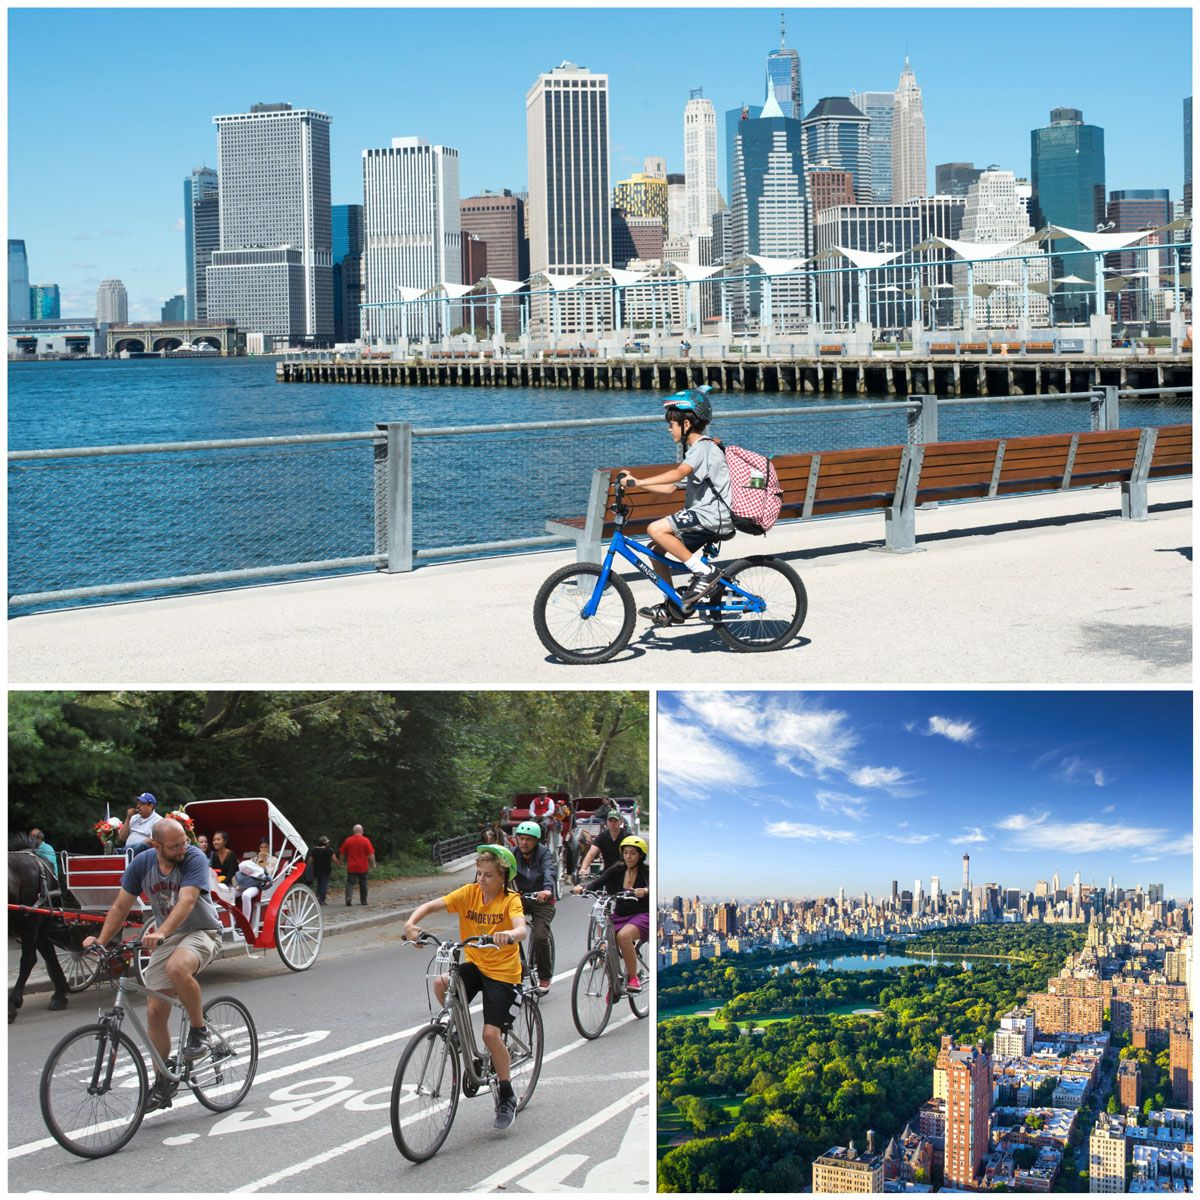 Bike tour of New York City in Central Park and on Brooklyn Water Front with downtown Manhattan skyline